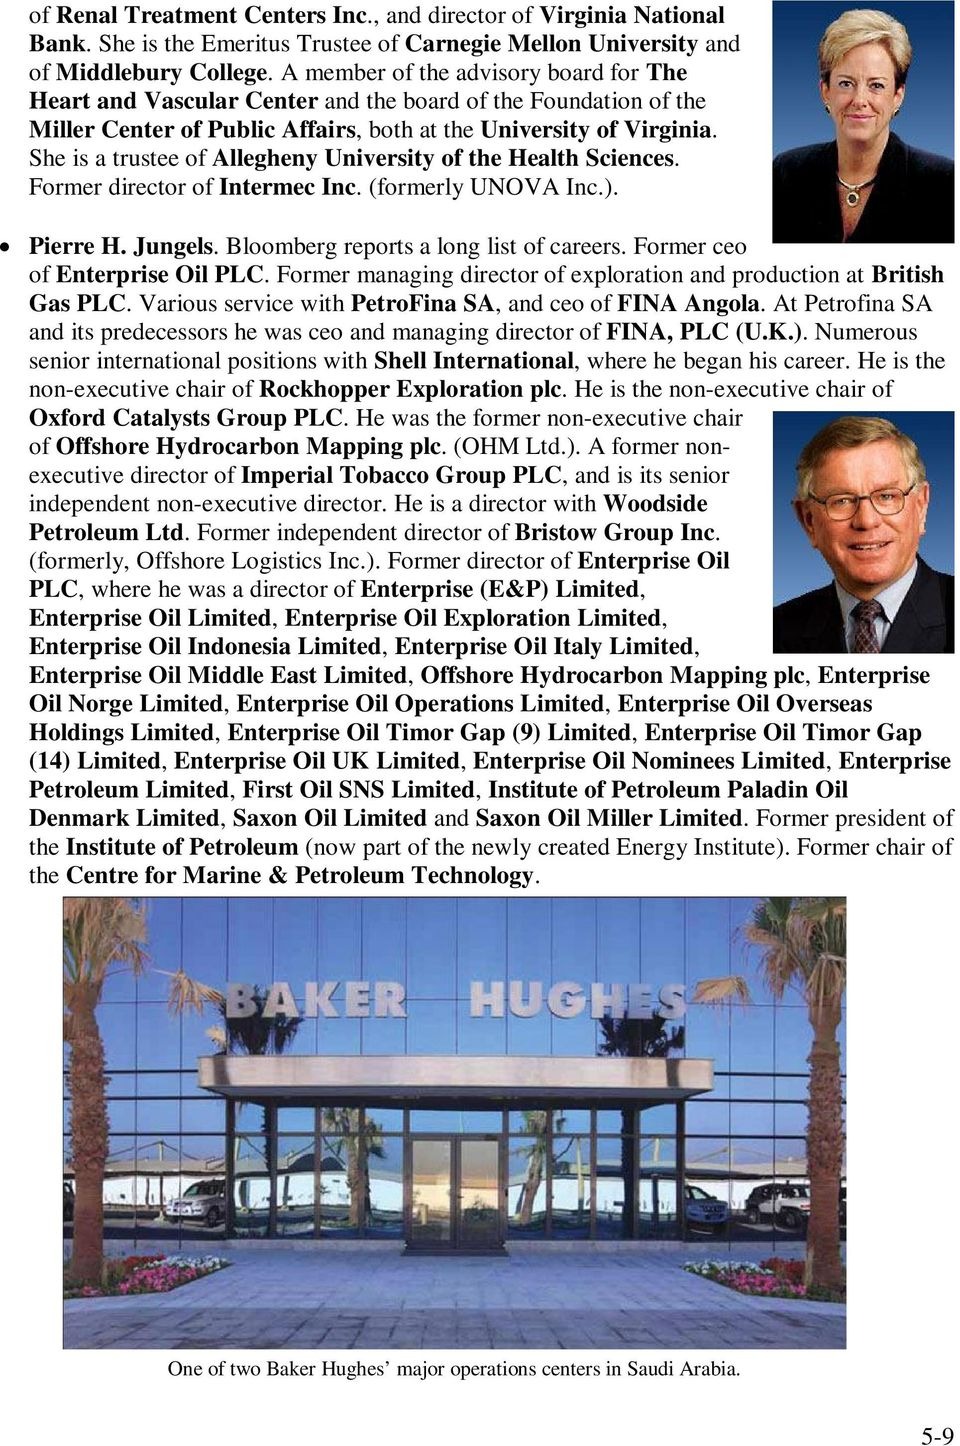 She is a trustee of Allegheny University of the Health Sciences. Former director of Intermec Inc. (formerly UNOVA Inc.). Pierre H. Jungels. Bloomberg reports a long list of careers.